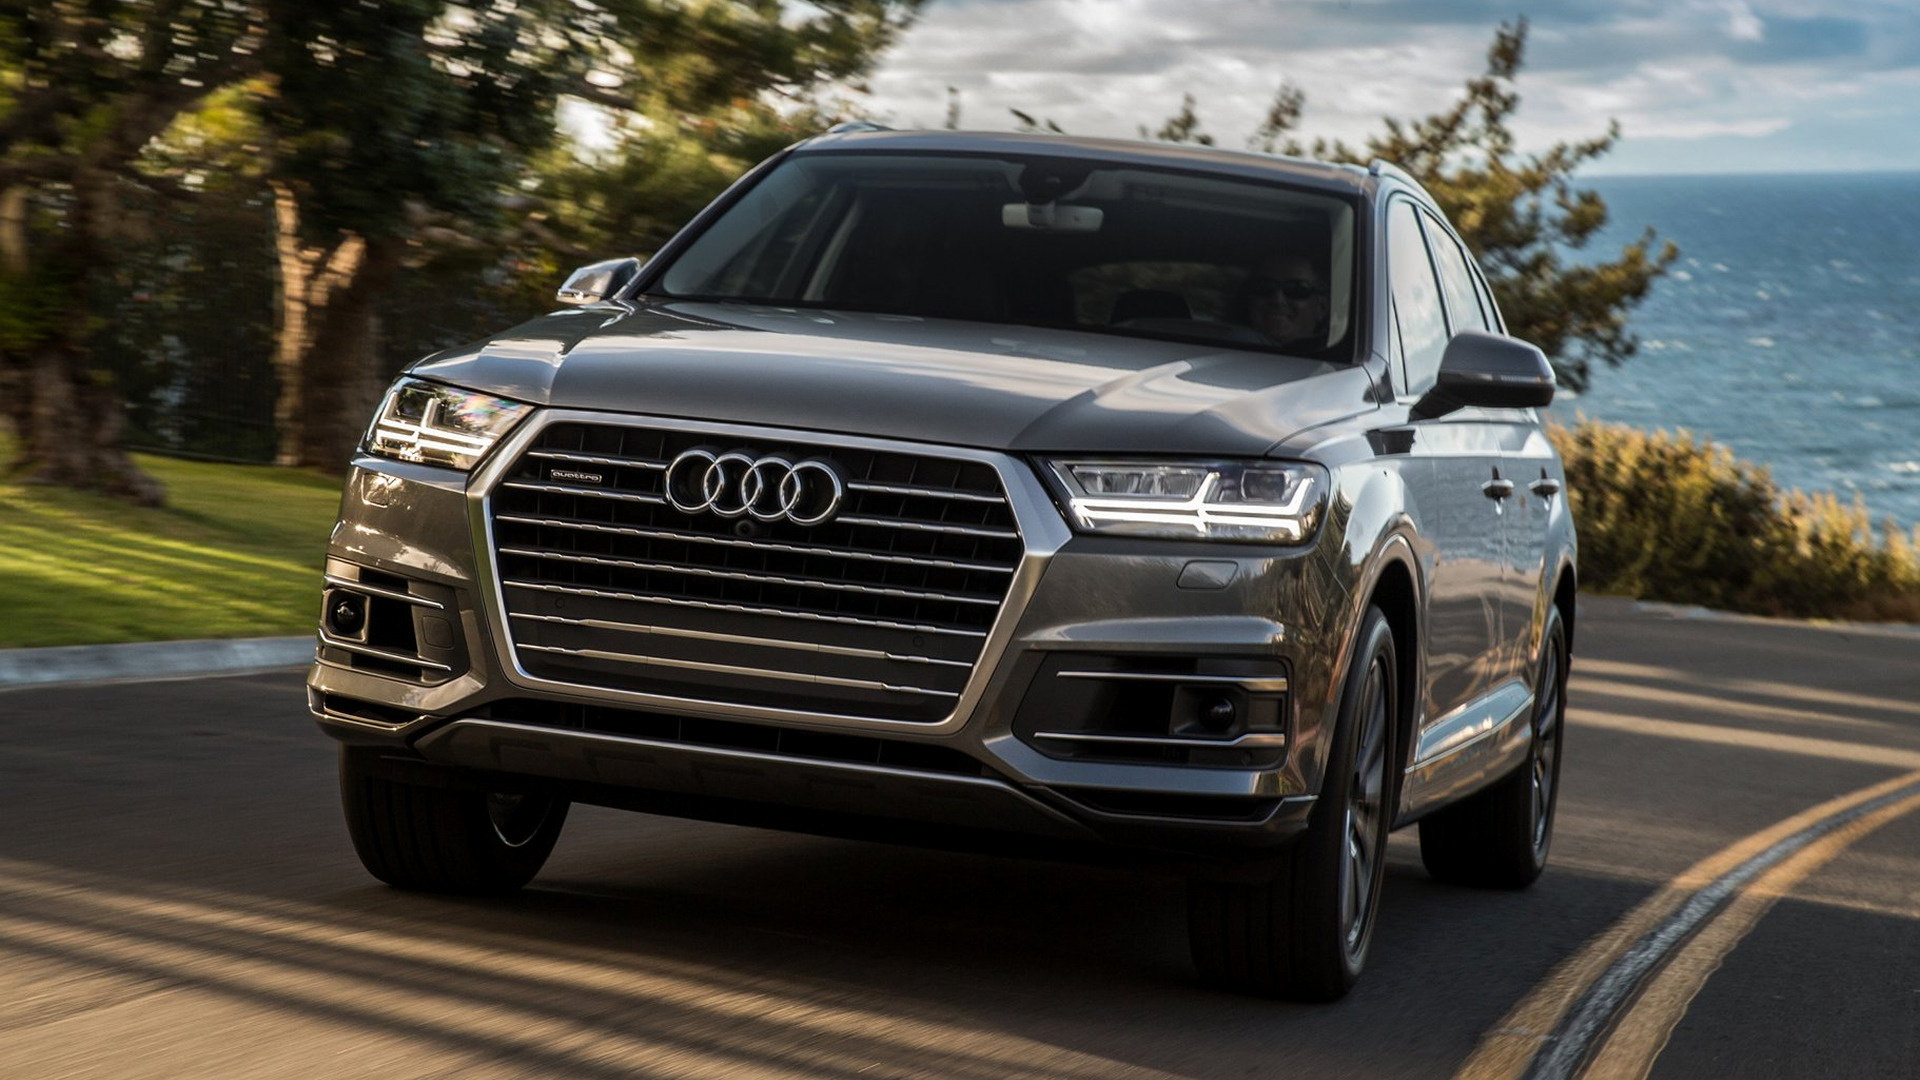 Audi Q7 (2017) US Wallpapers and HD Images - Car Pixel